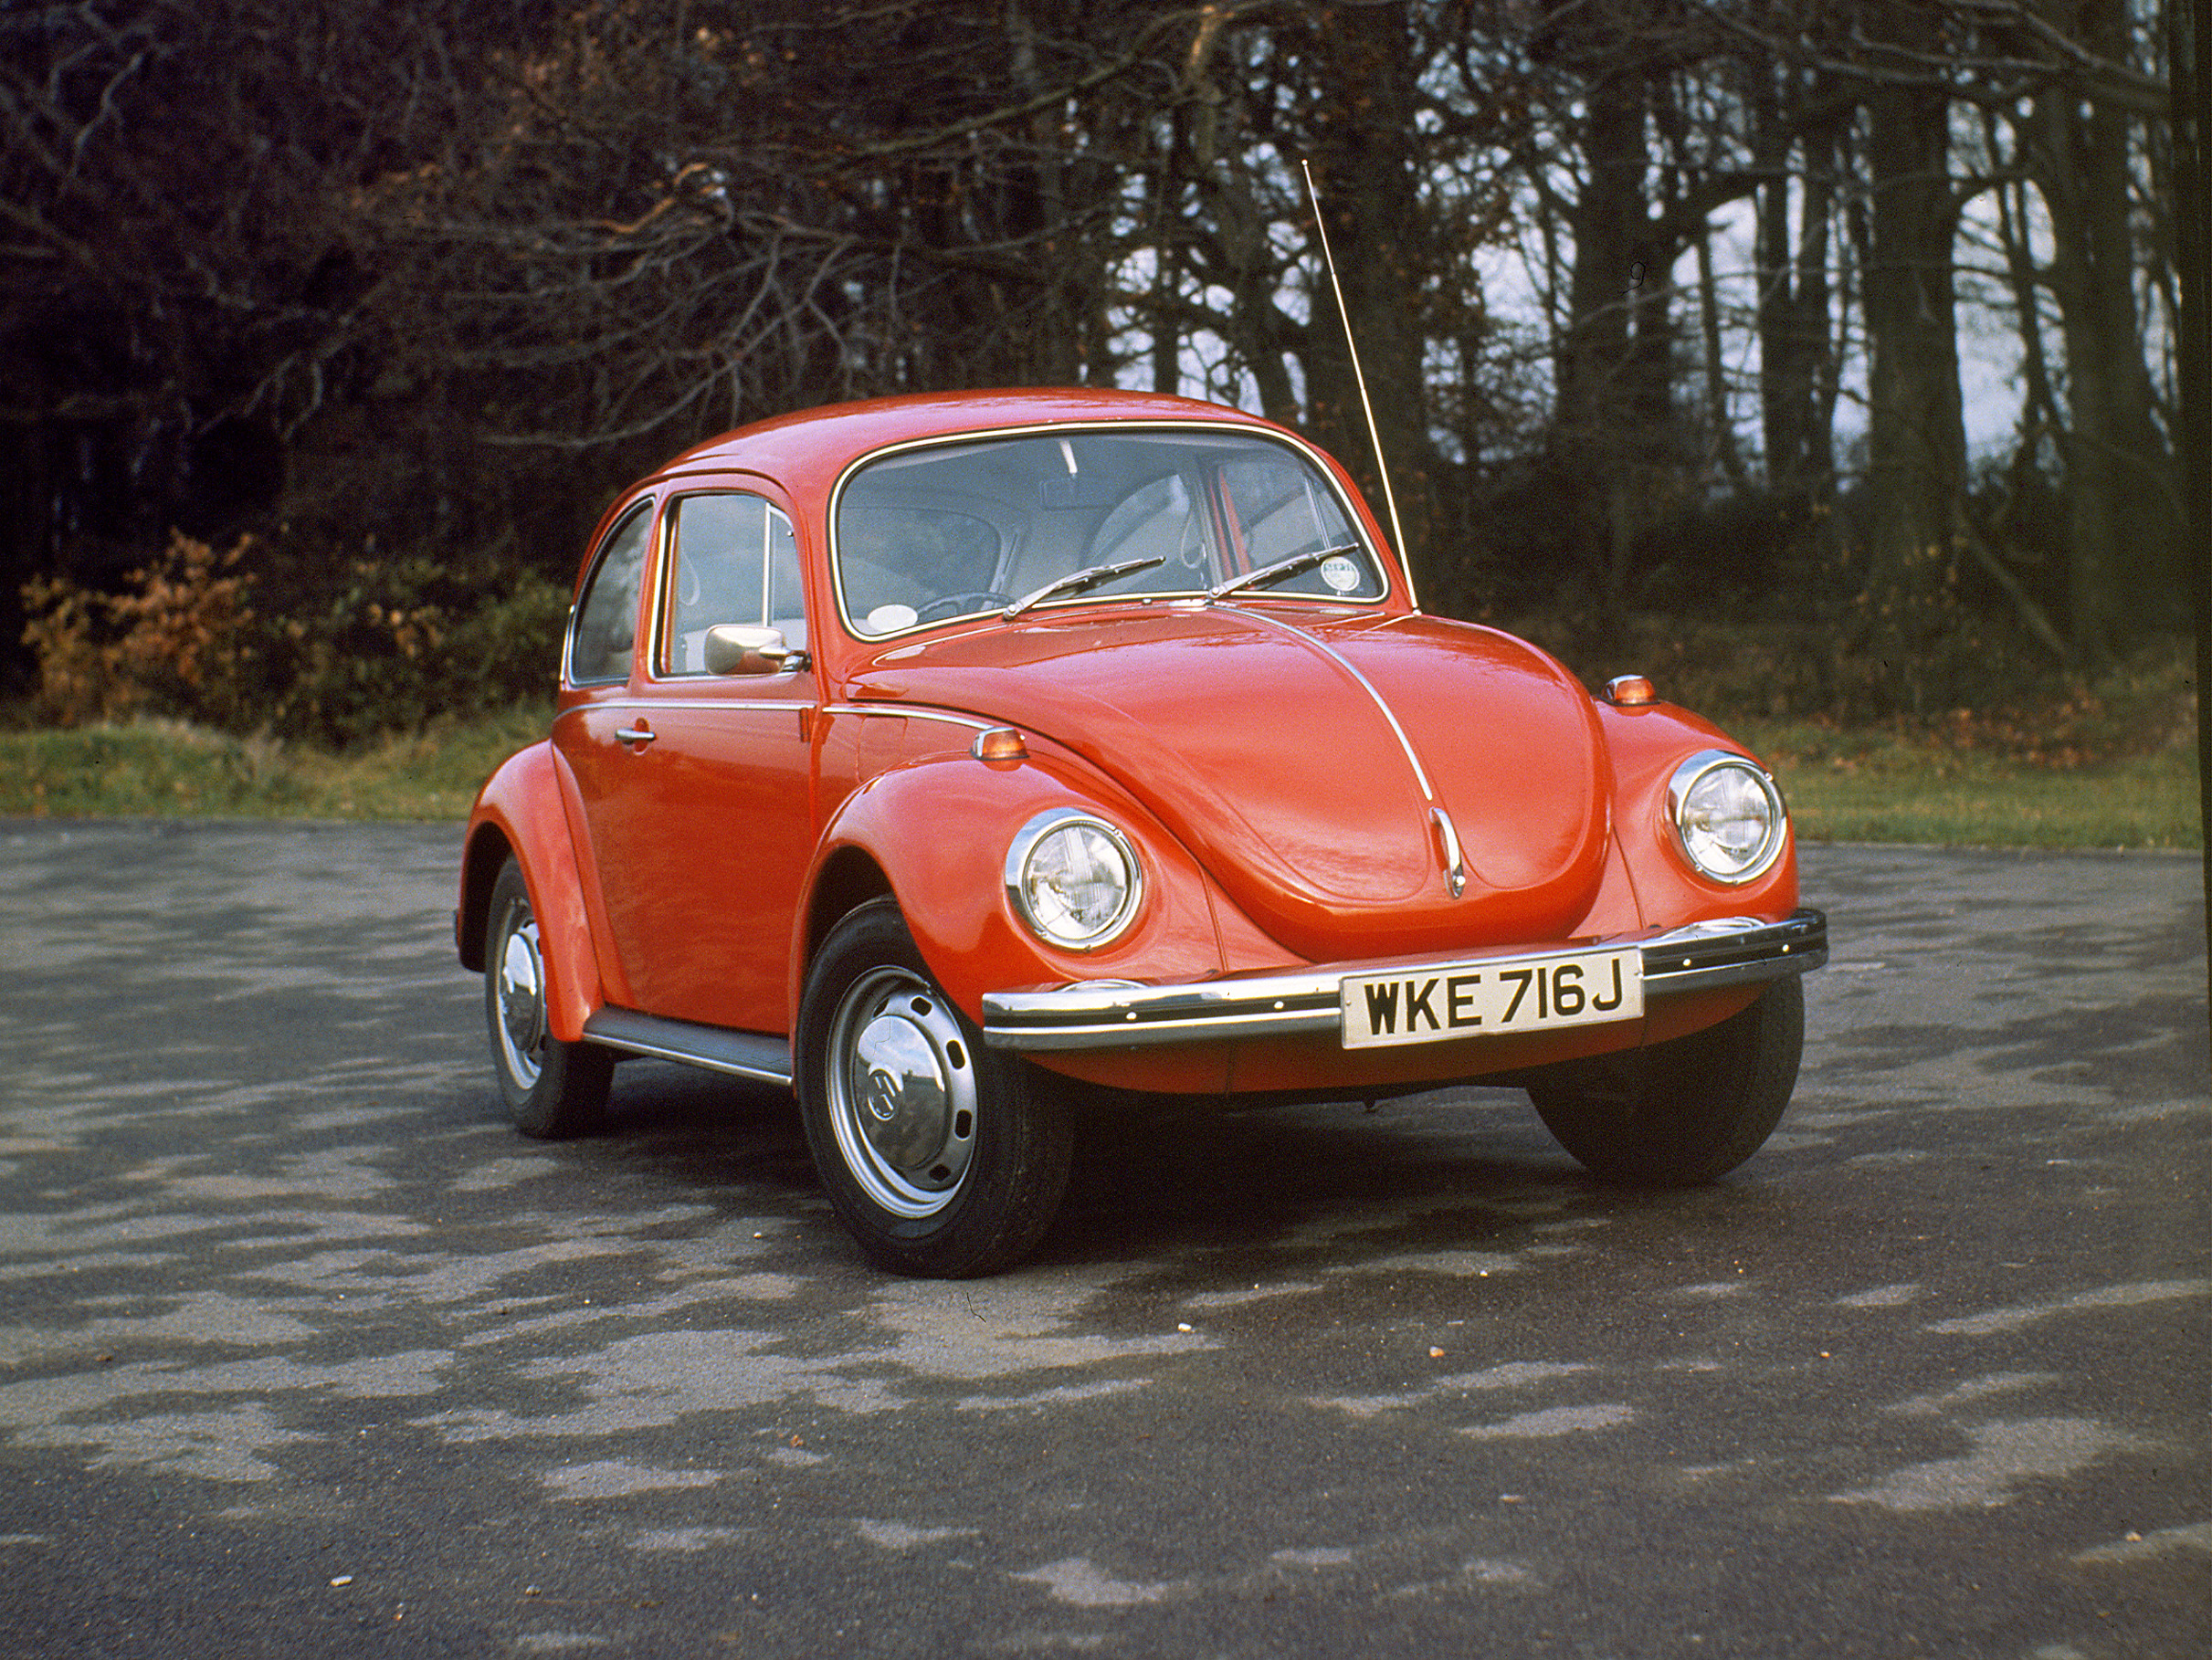 The Volkswagen Beetle was one of the first mass-production vehicles